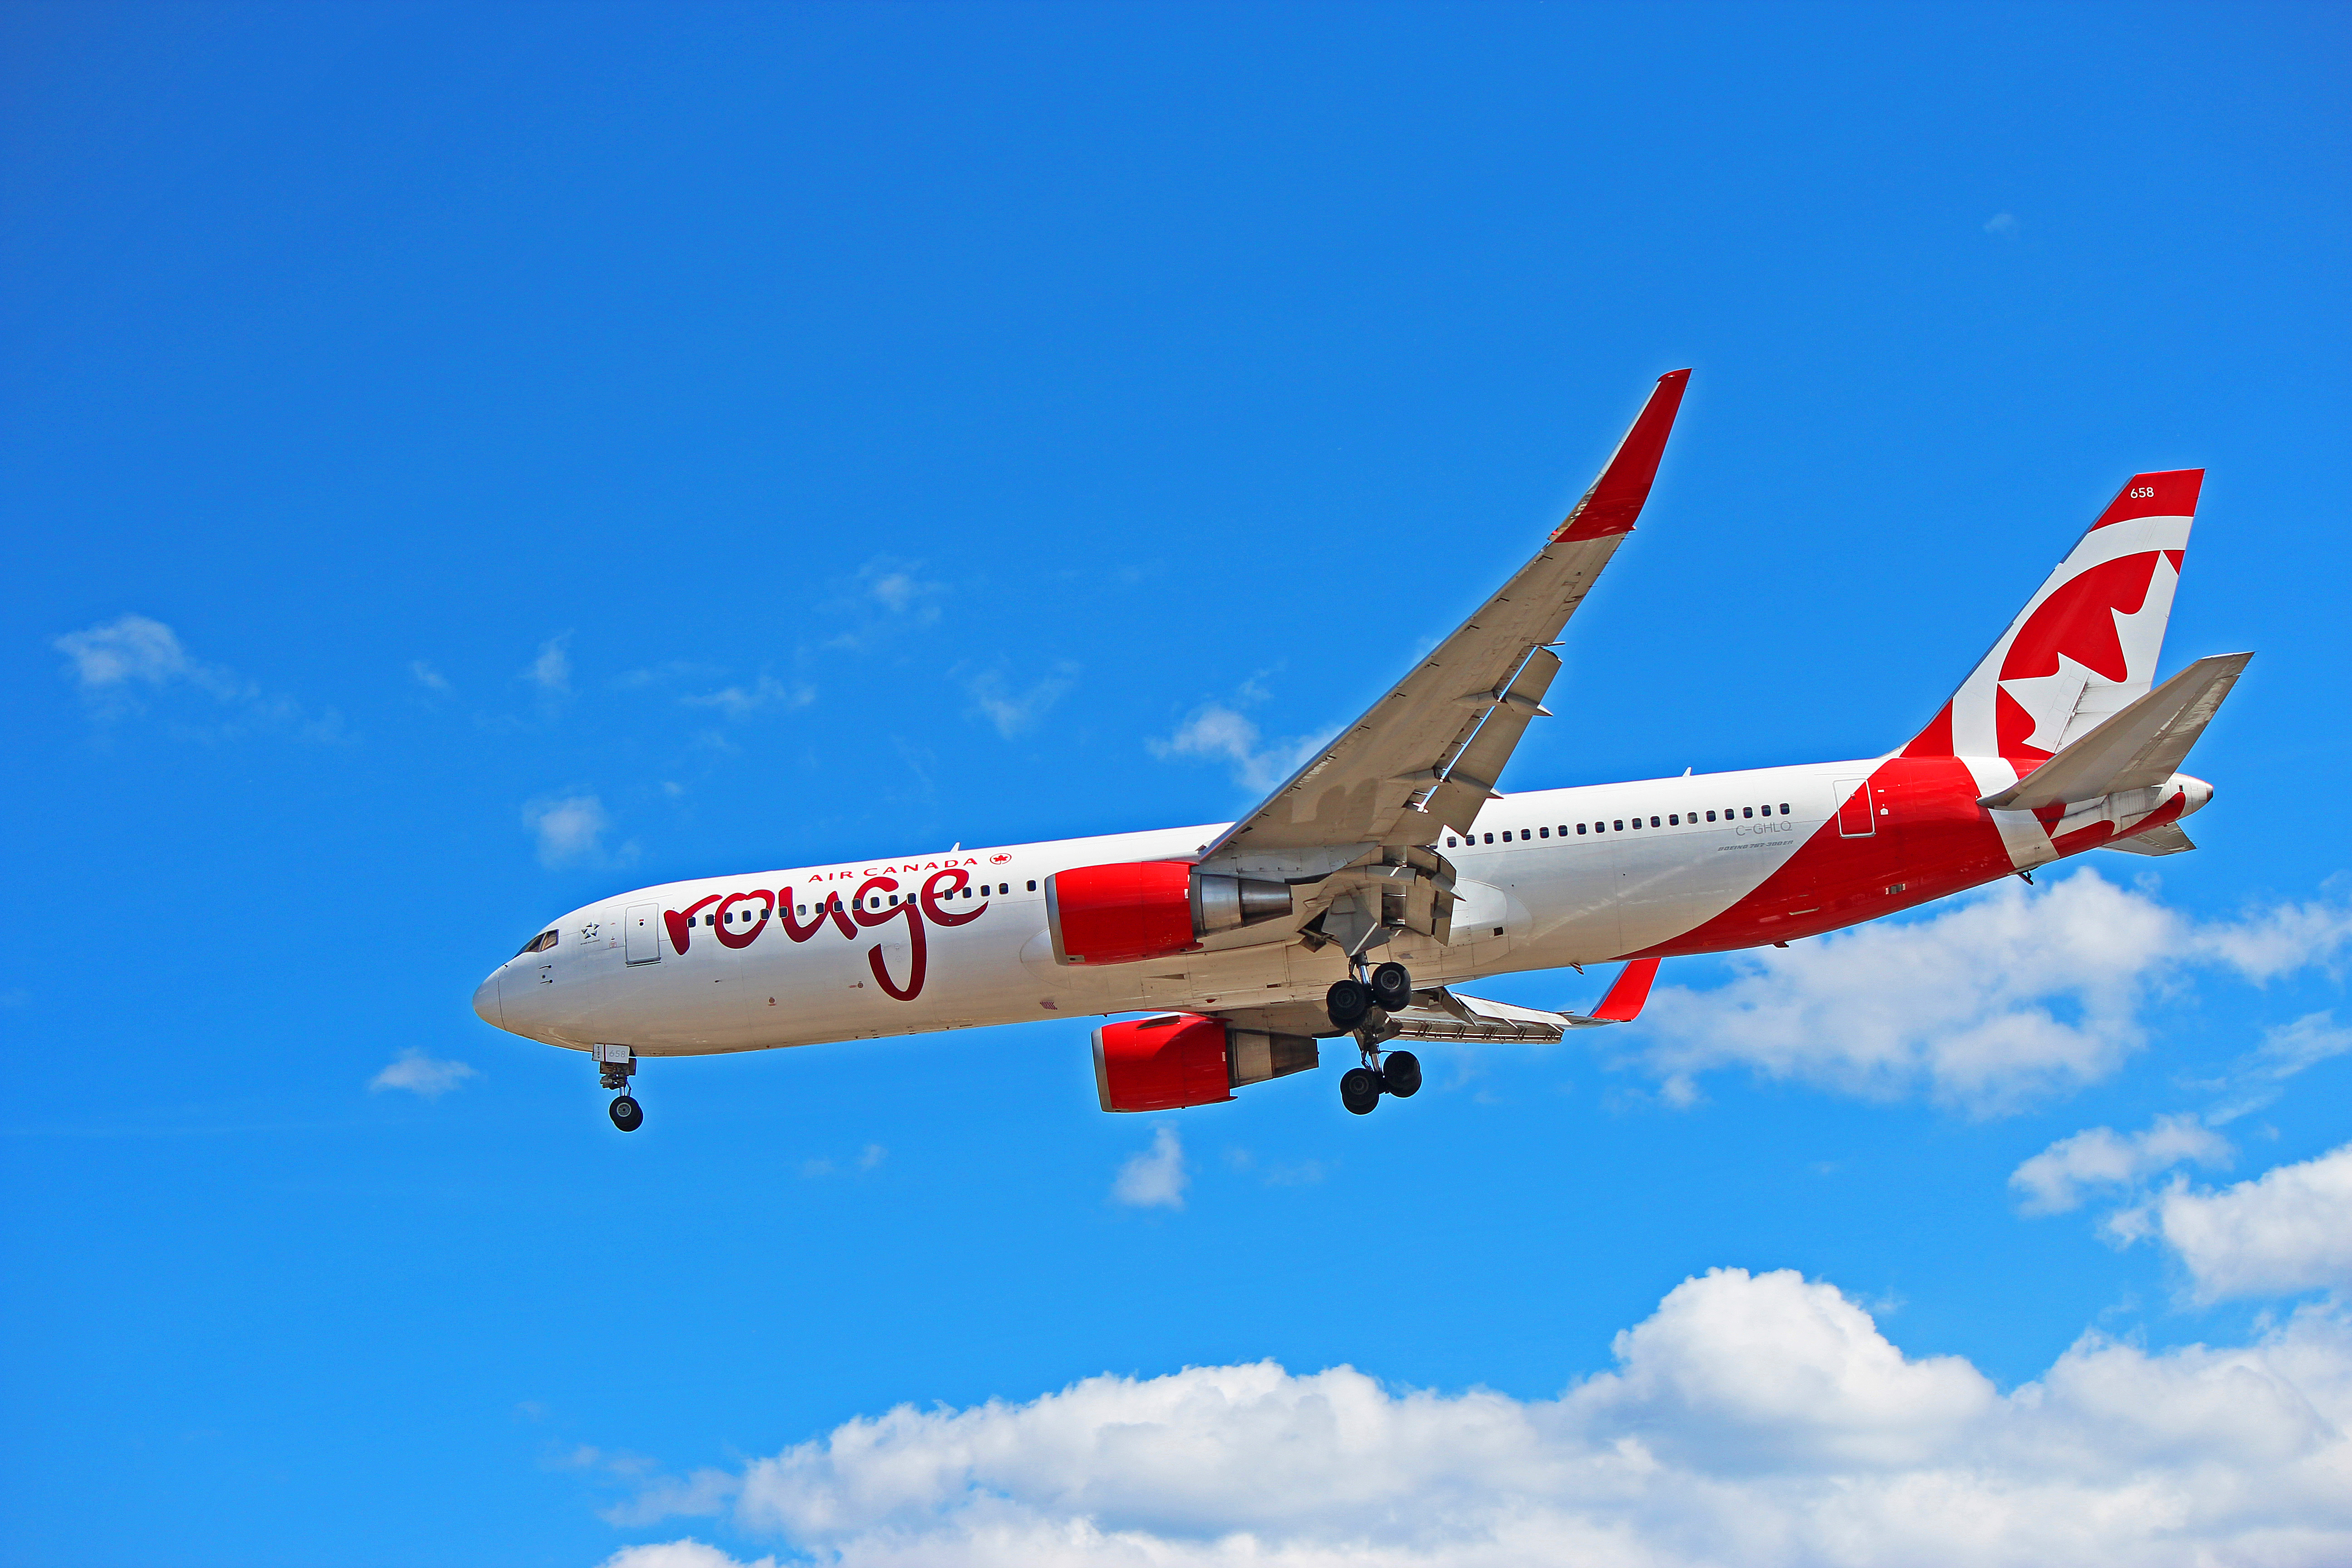 C-GHLQ: Air Canada Rouge Boeing 767-300ER At YYZ